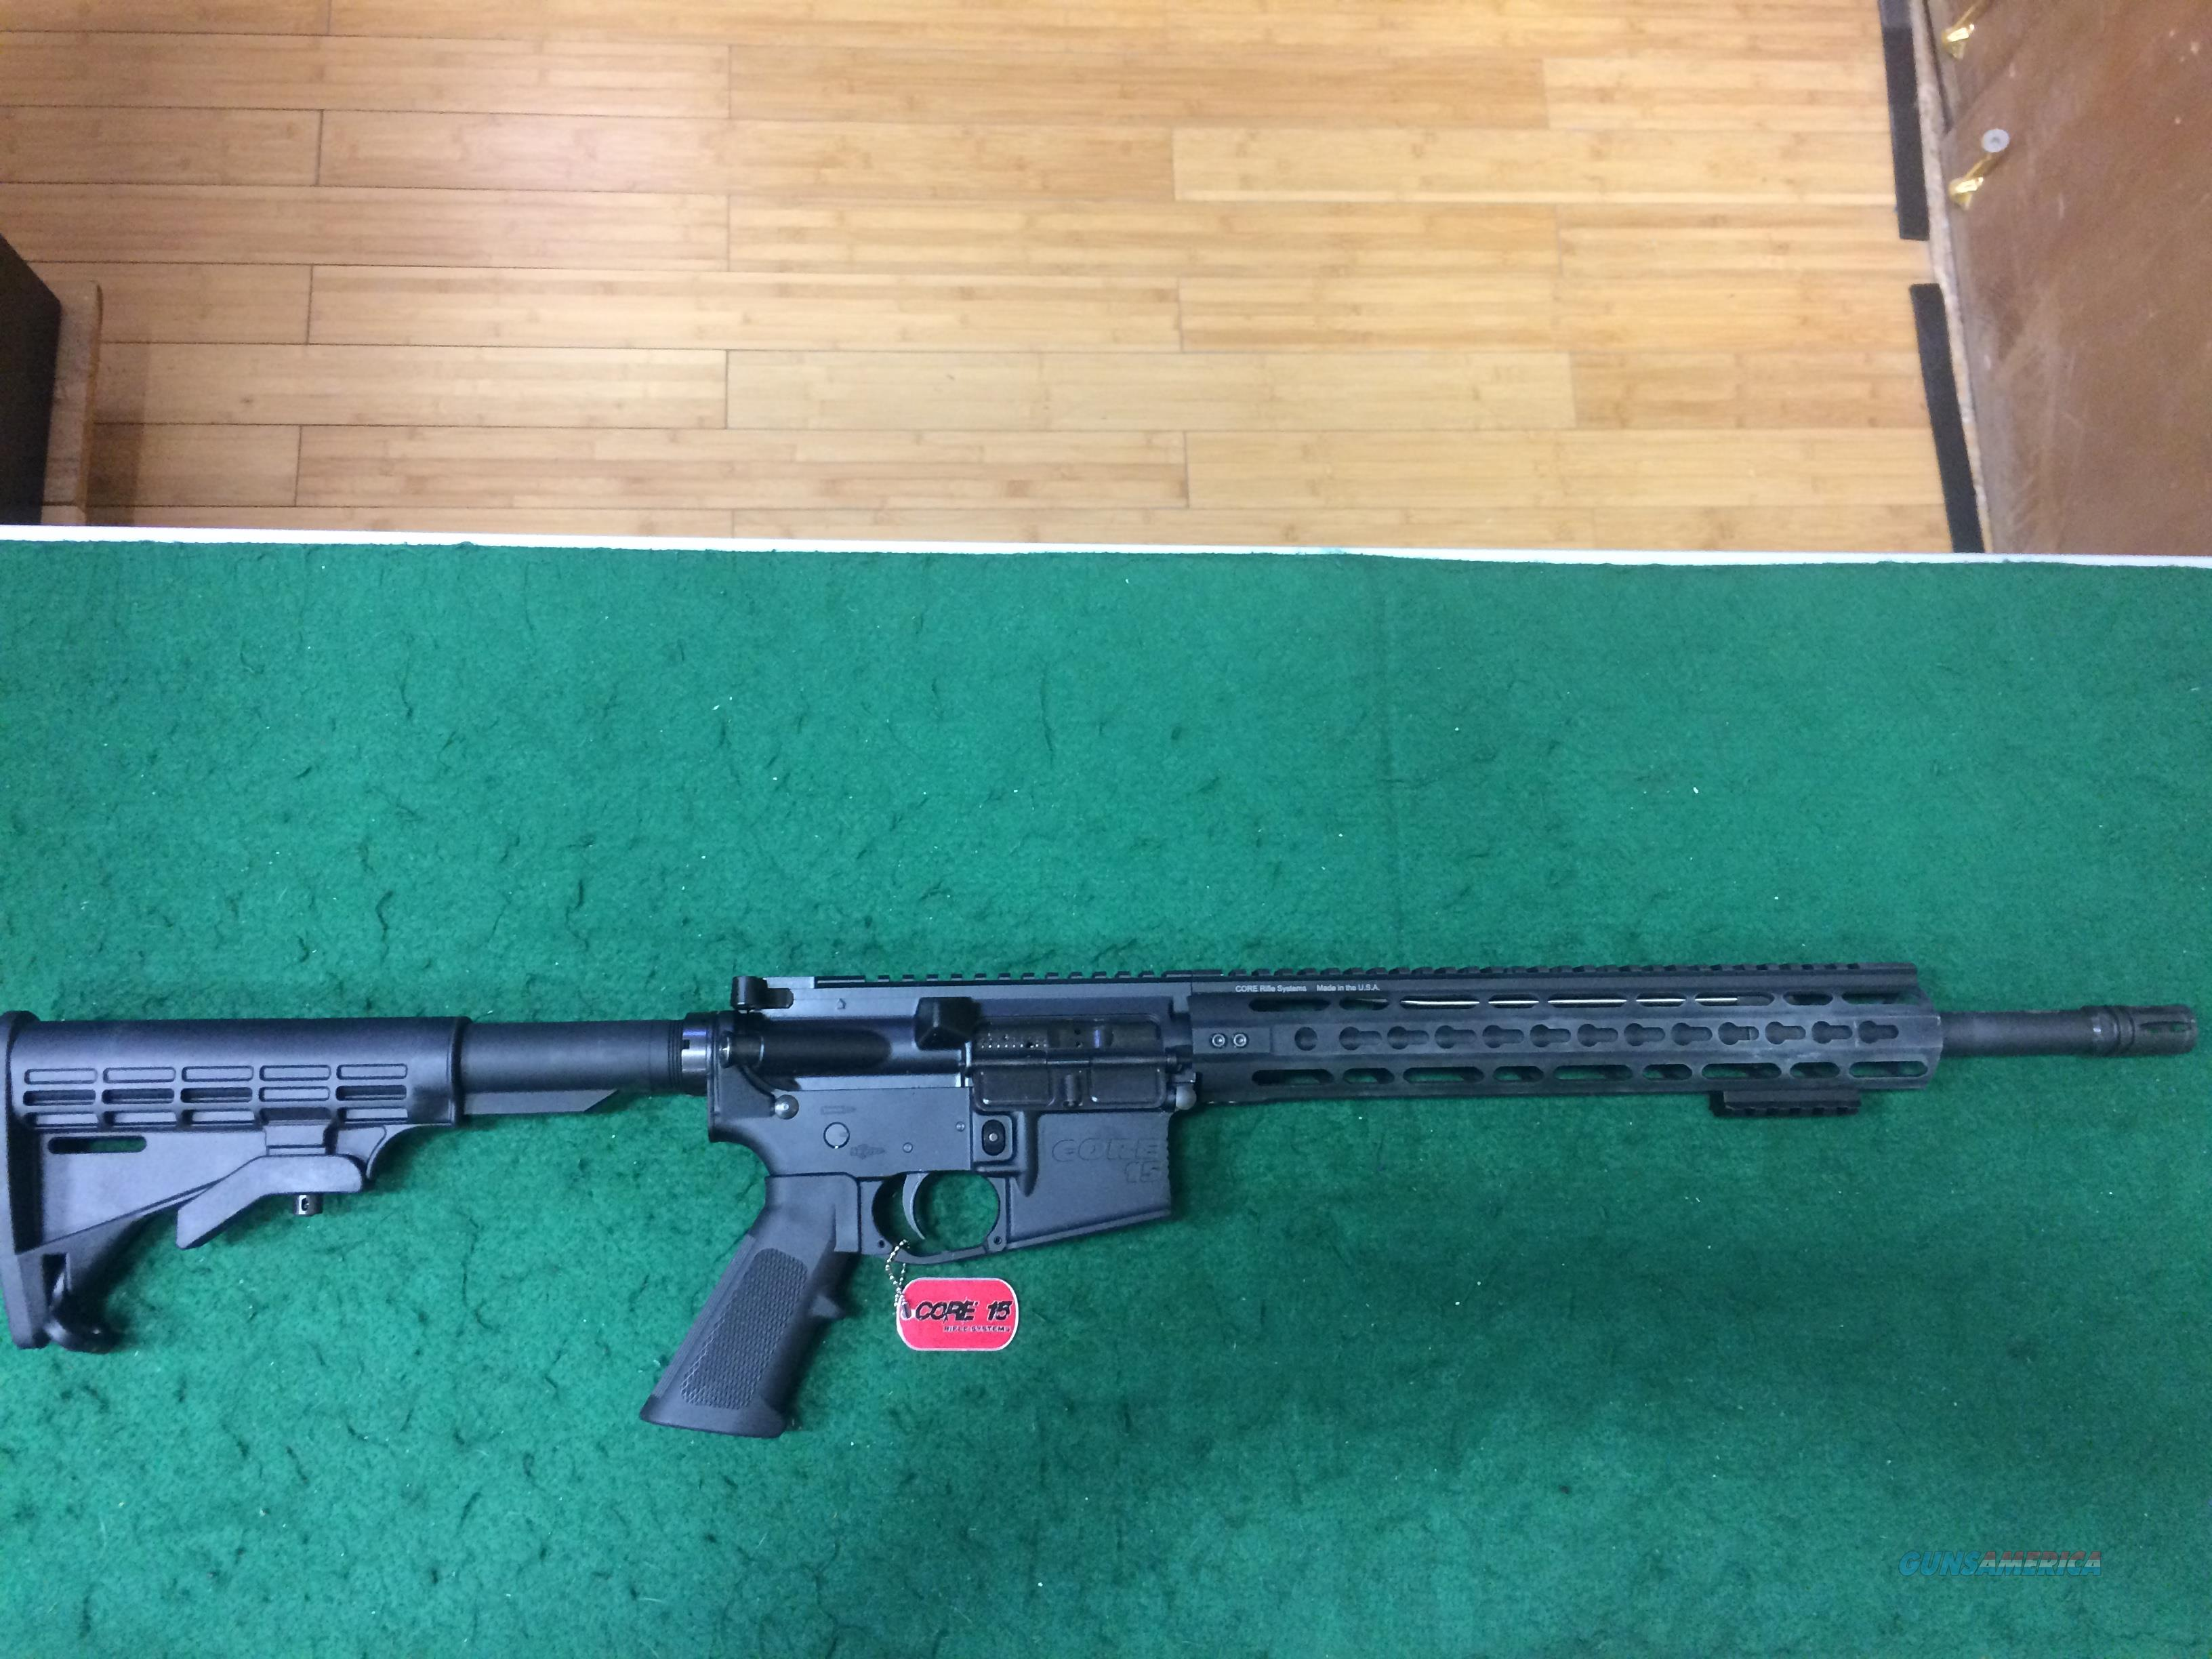 Core 15 XV C15 Keymod Scout  Guns > Rifles > AR-15 Rifles - Small Manufacturers > Lower Only